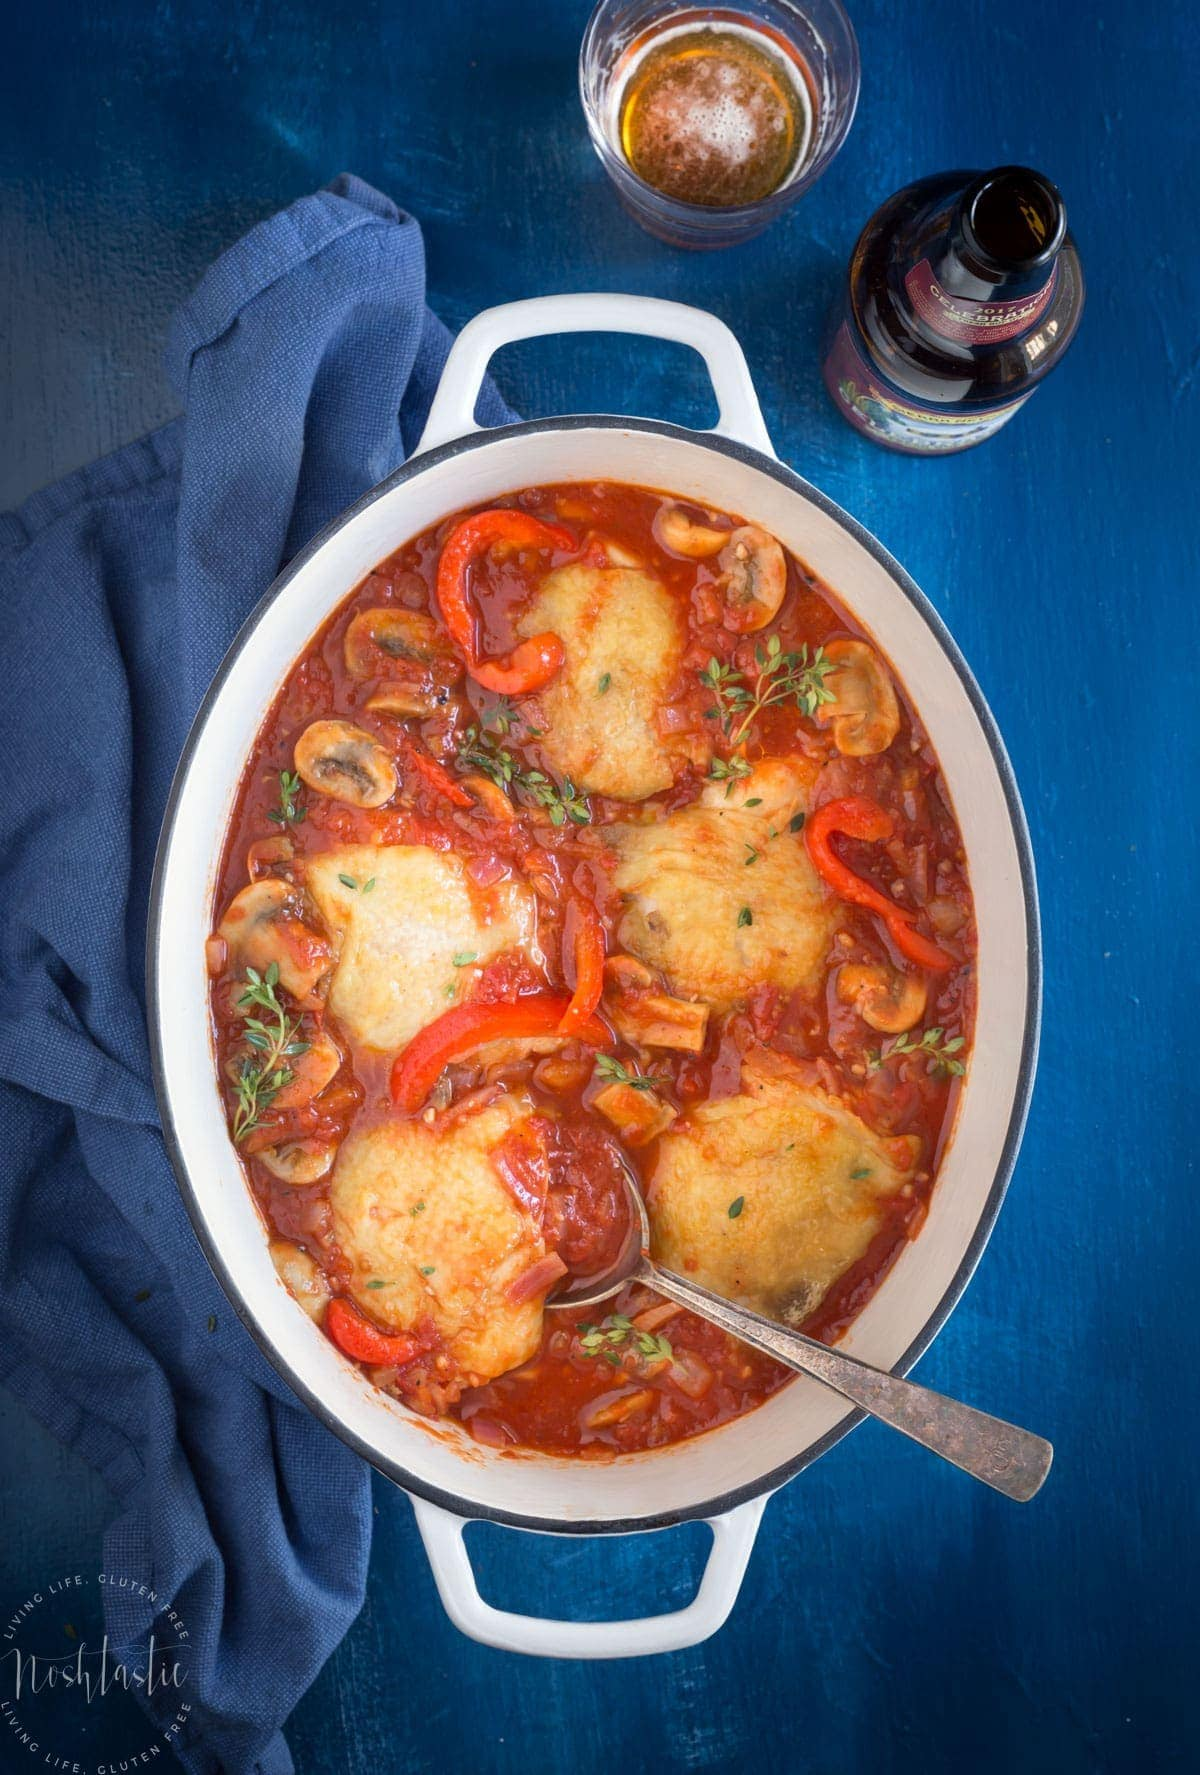 Overhead view of dutch oven with chicken cacciatore and a glass of beer to the side